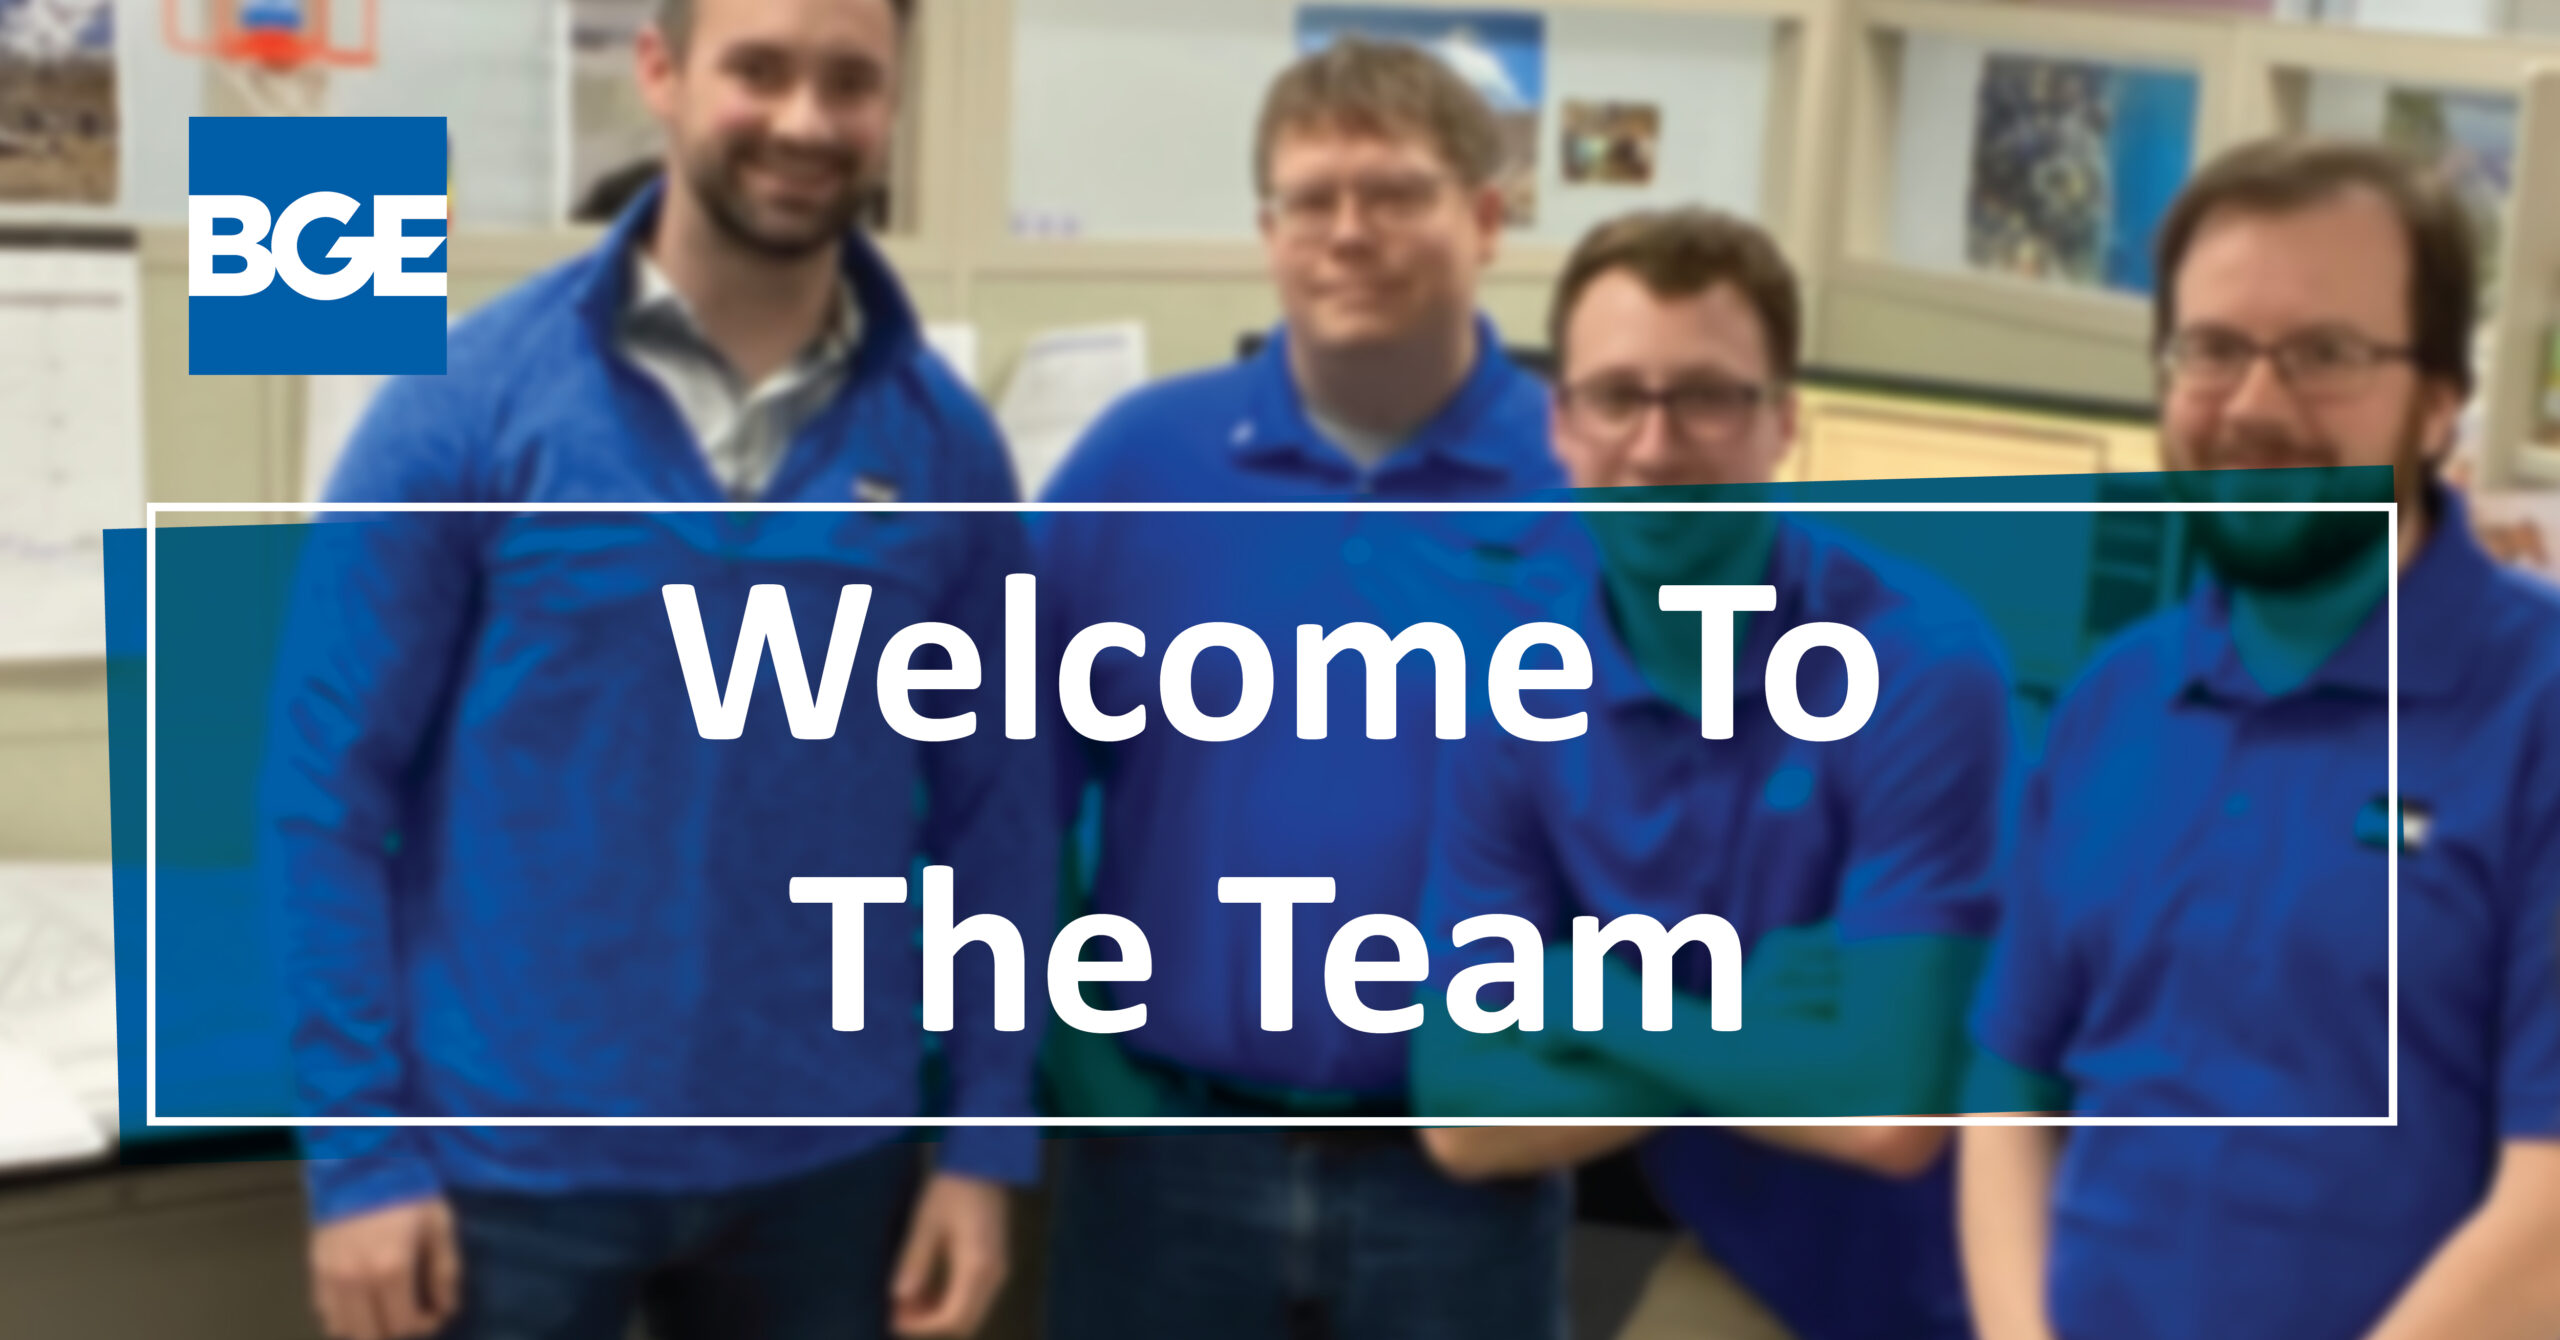 Welcome graphic for new hires at BGE, Inc. in August 2021.